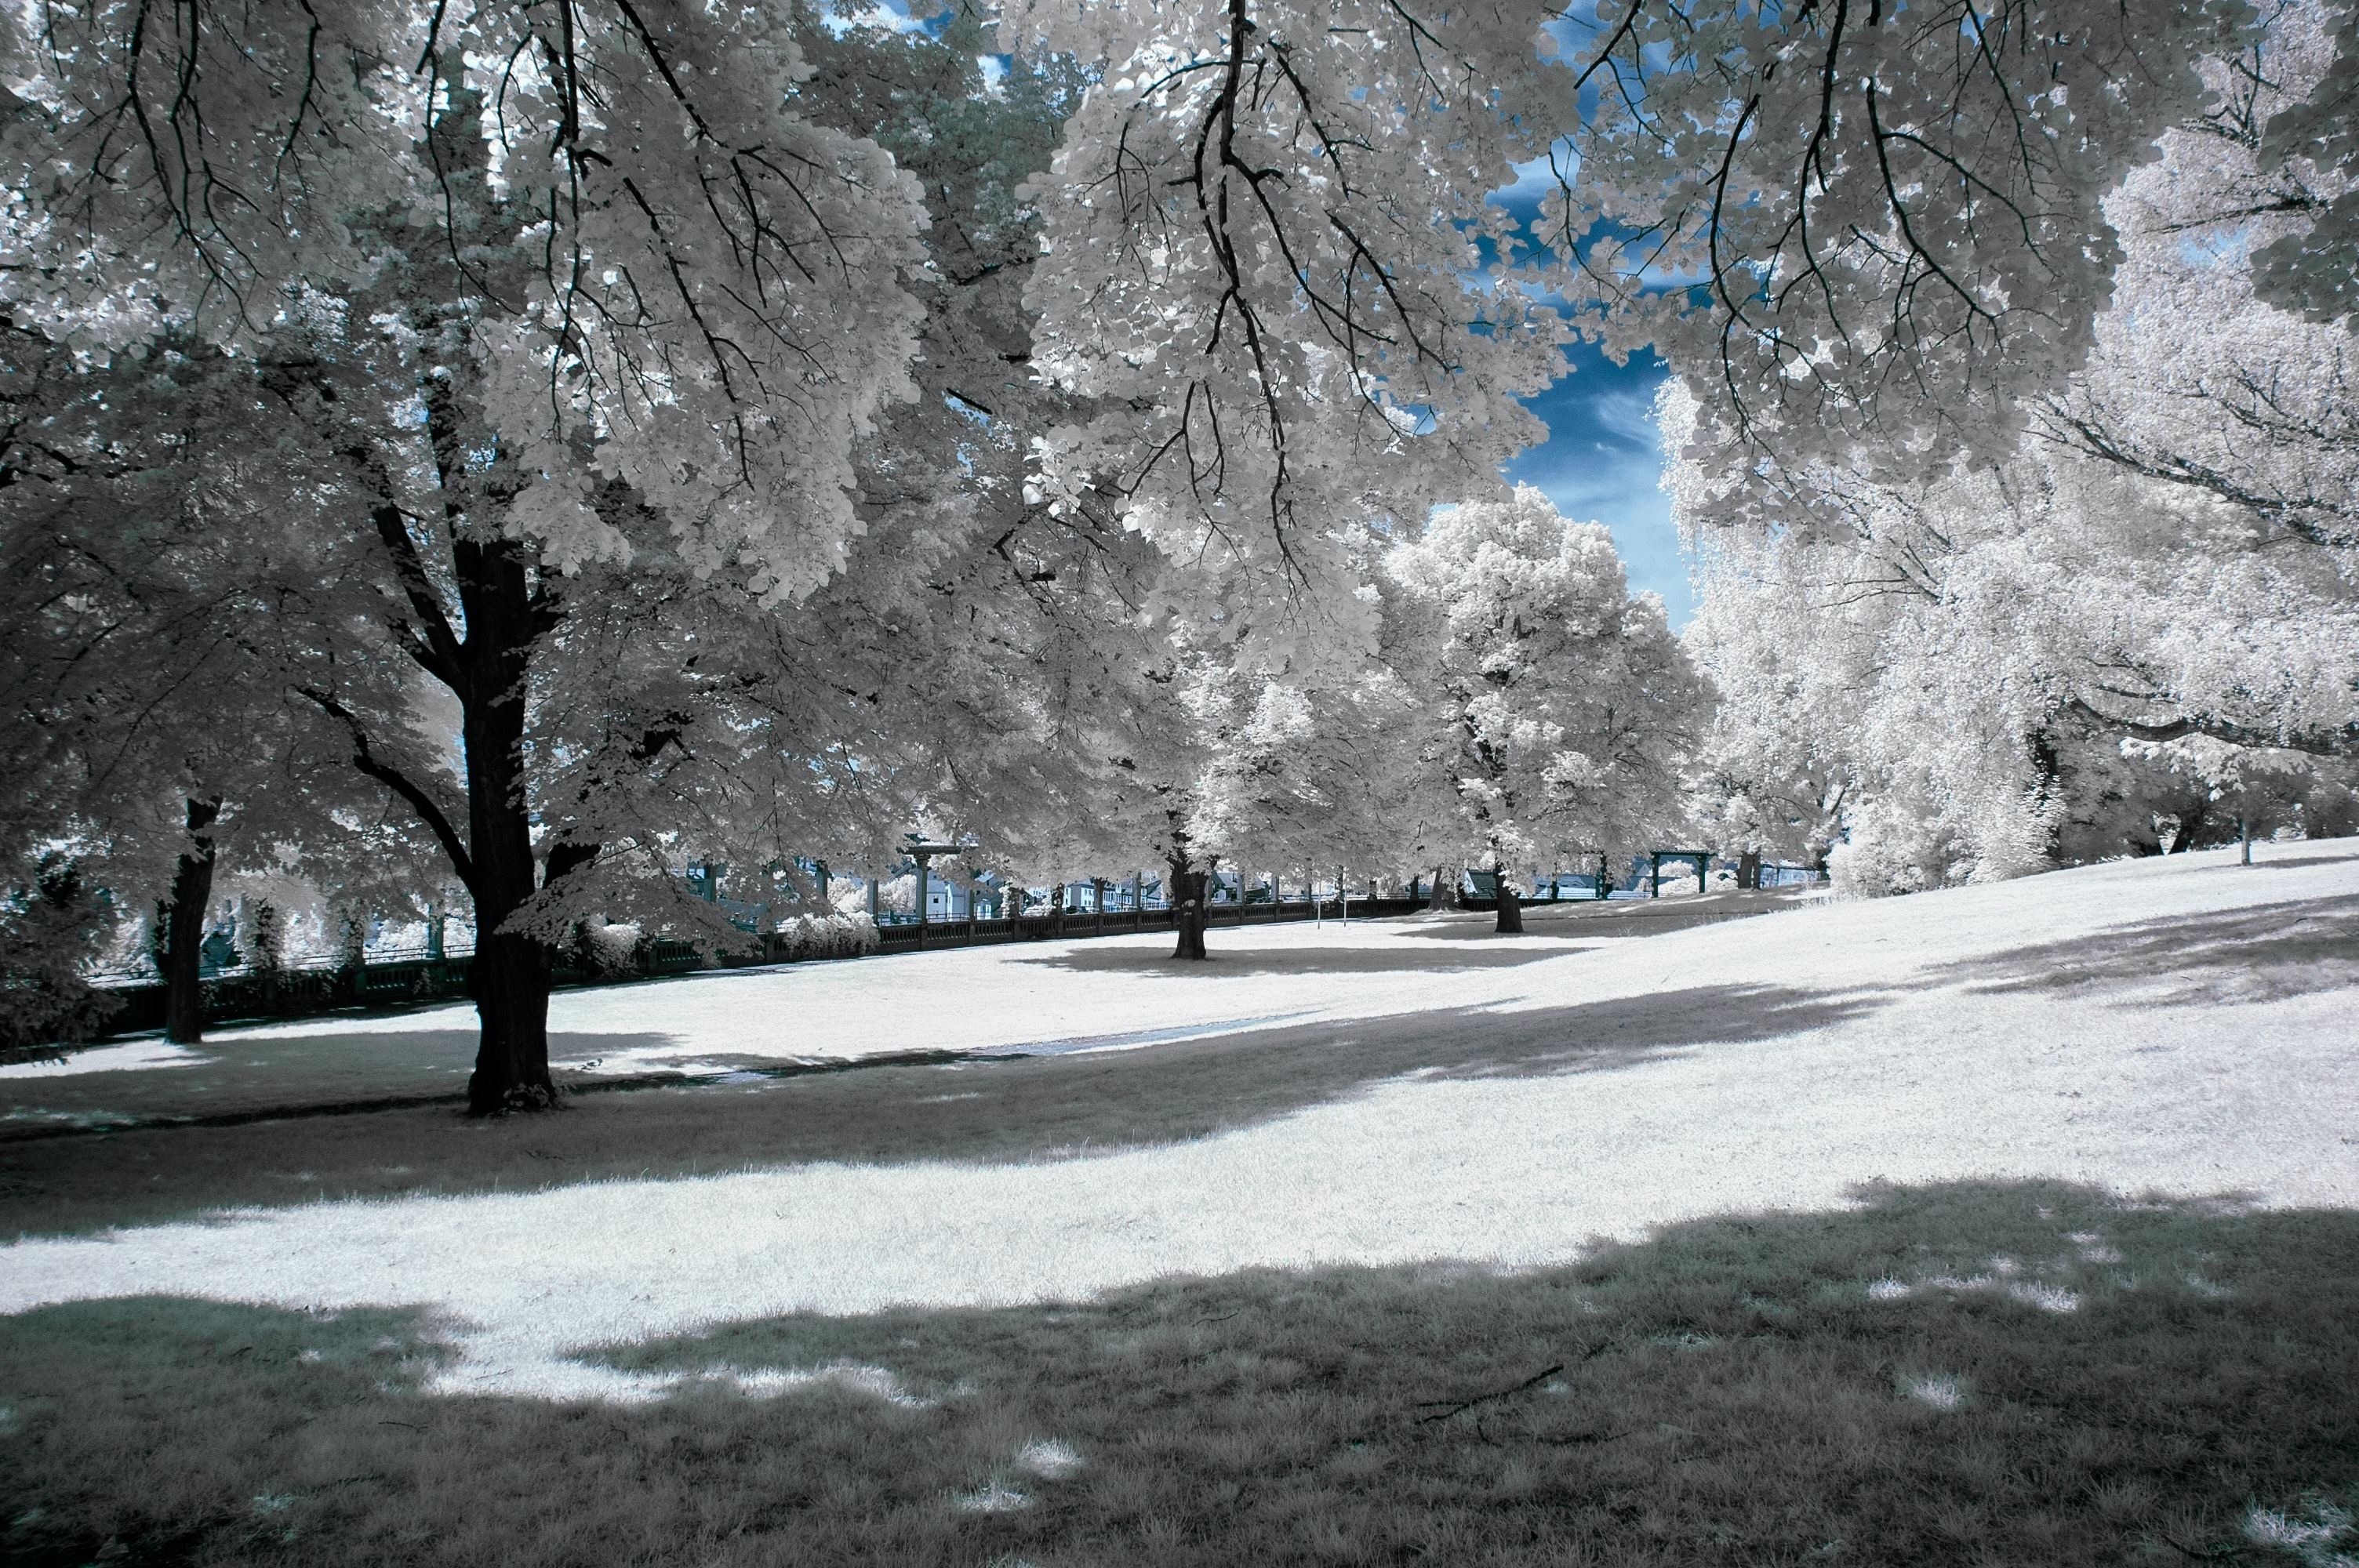 White trees covered with snow and ice with blue sky peaking through